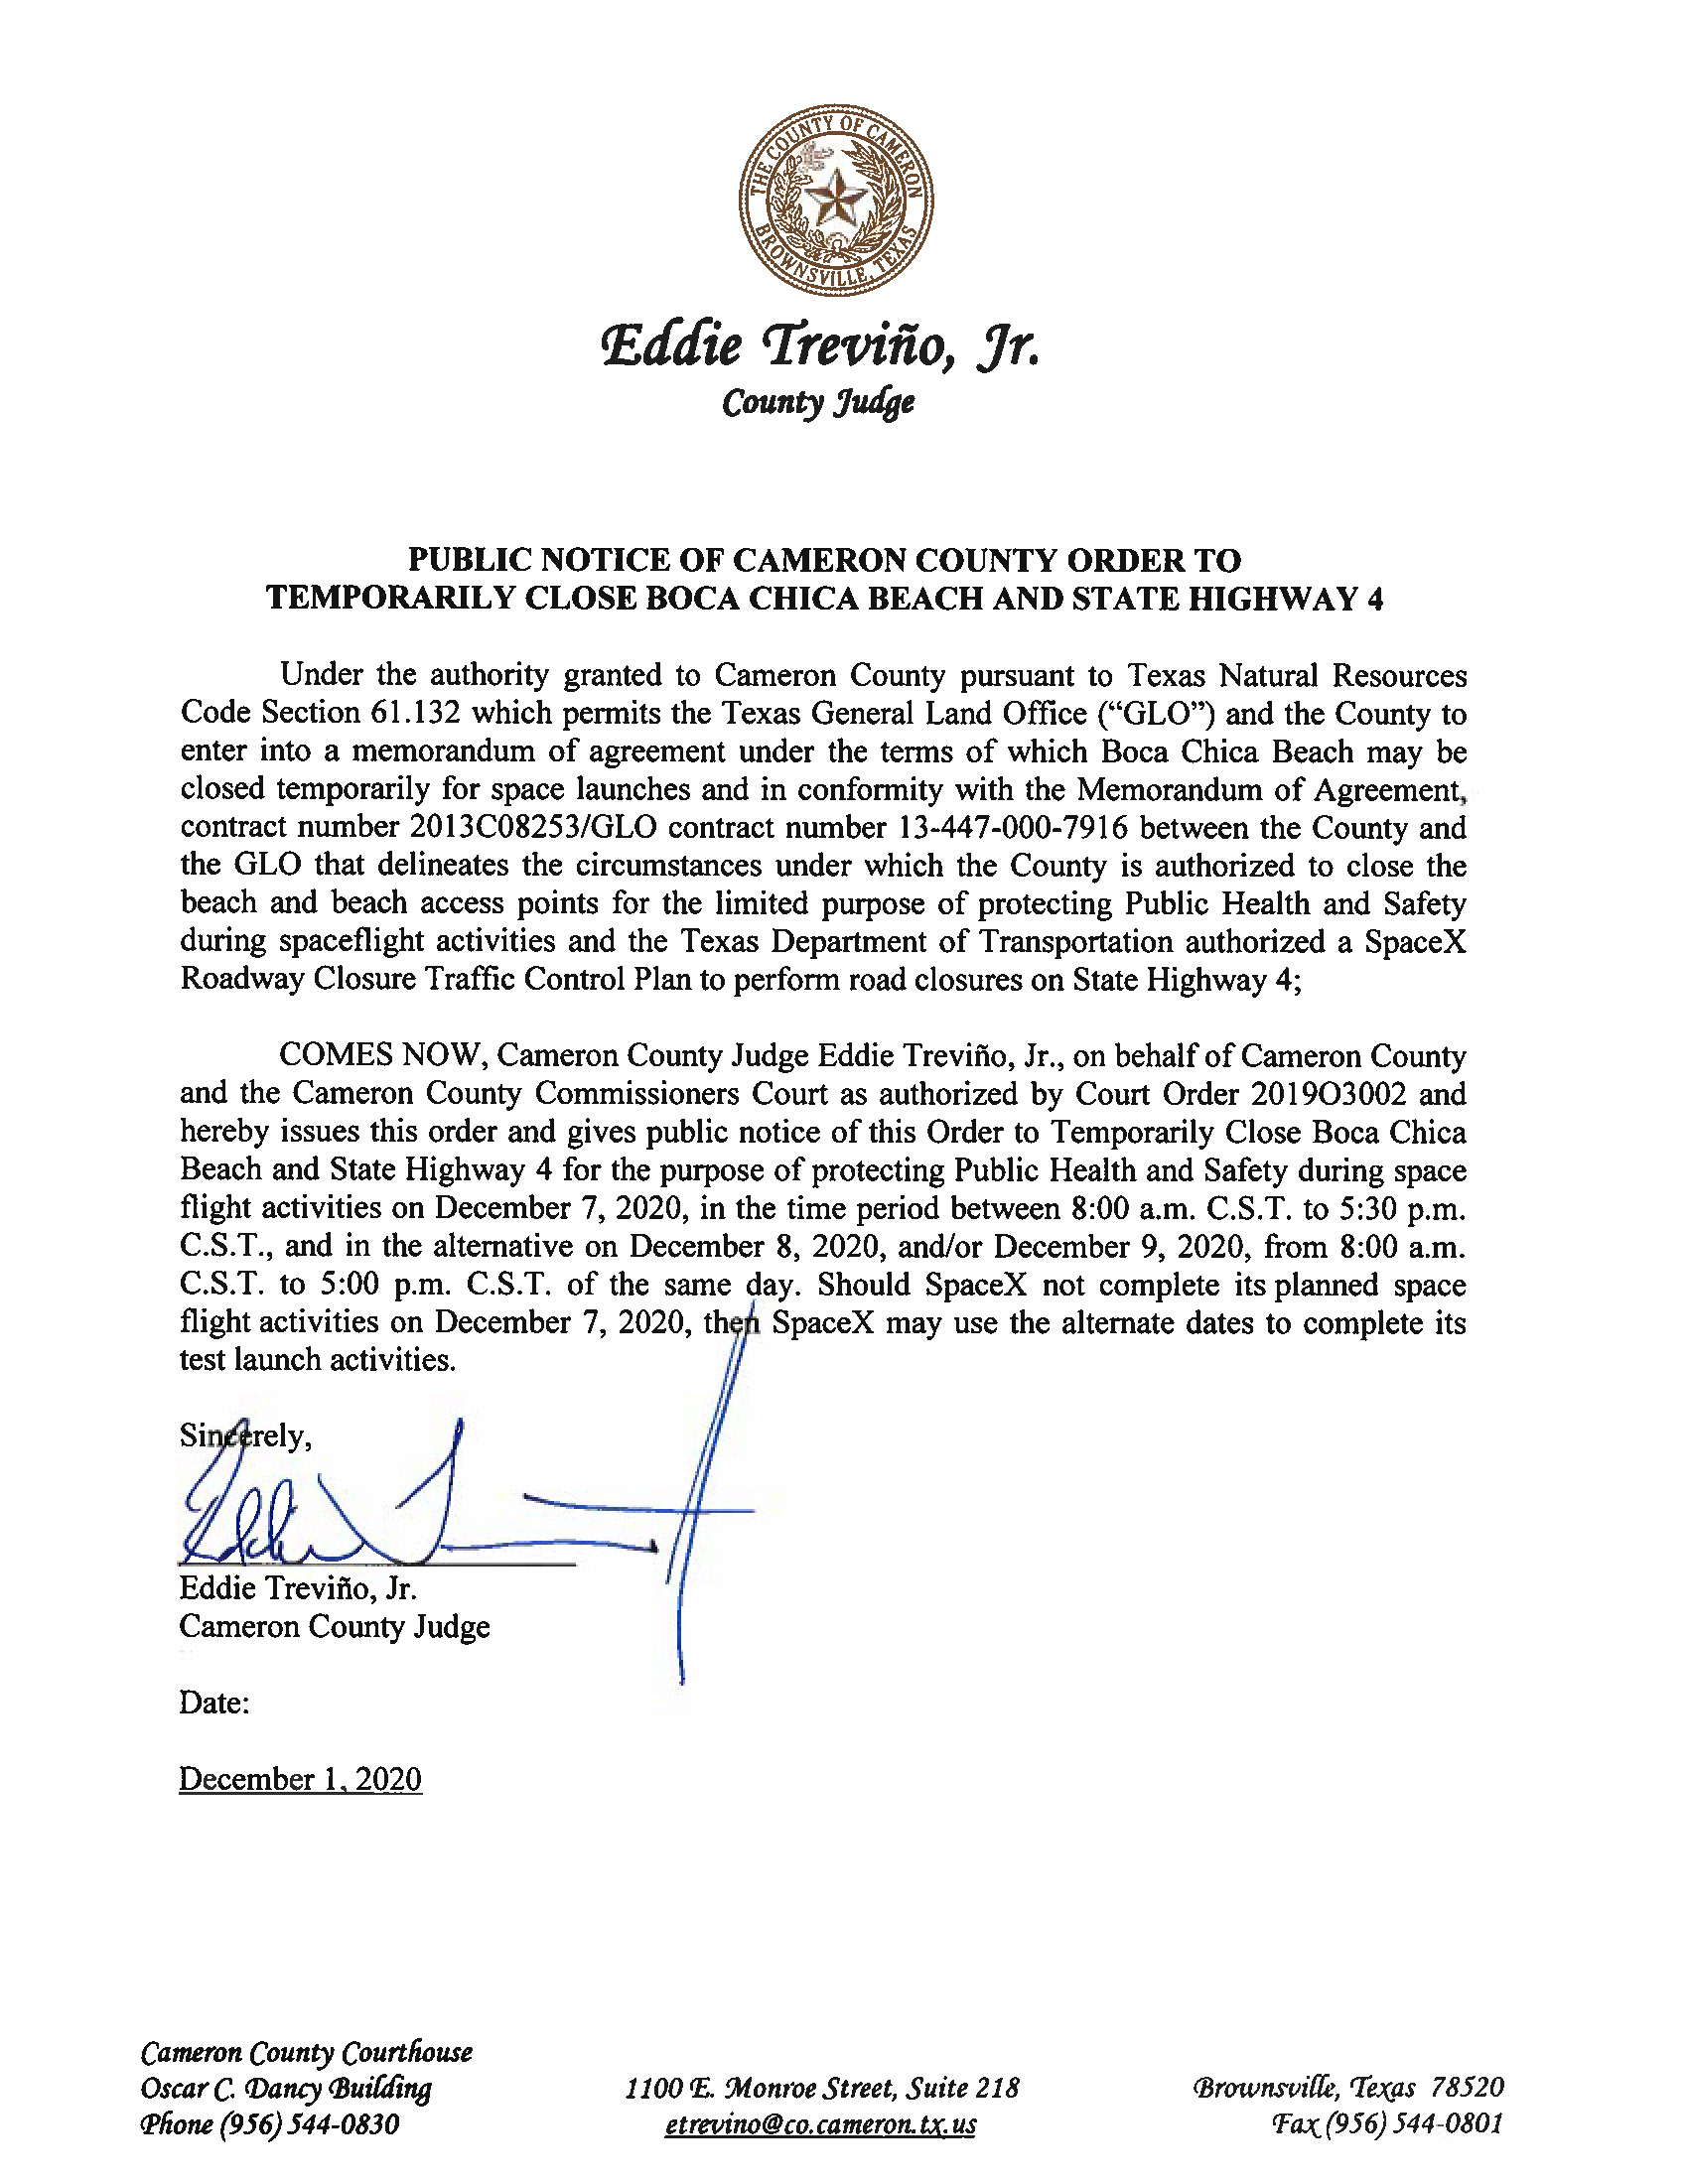 PUBLIC NOTICE OF CAMERON COUNTY ORDER TO TEMP. BEACH CLOSURE AND HWY.12.07.20 Page 1